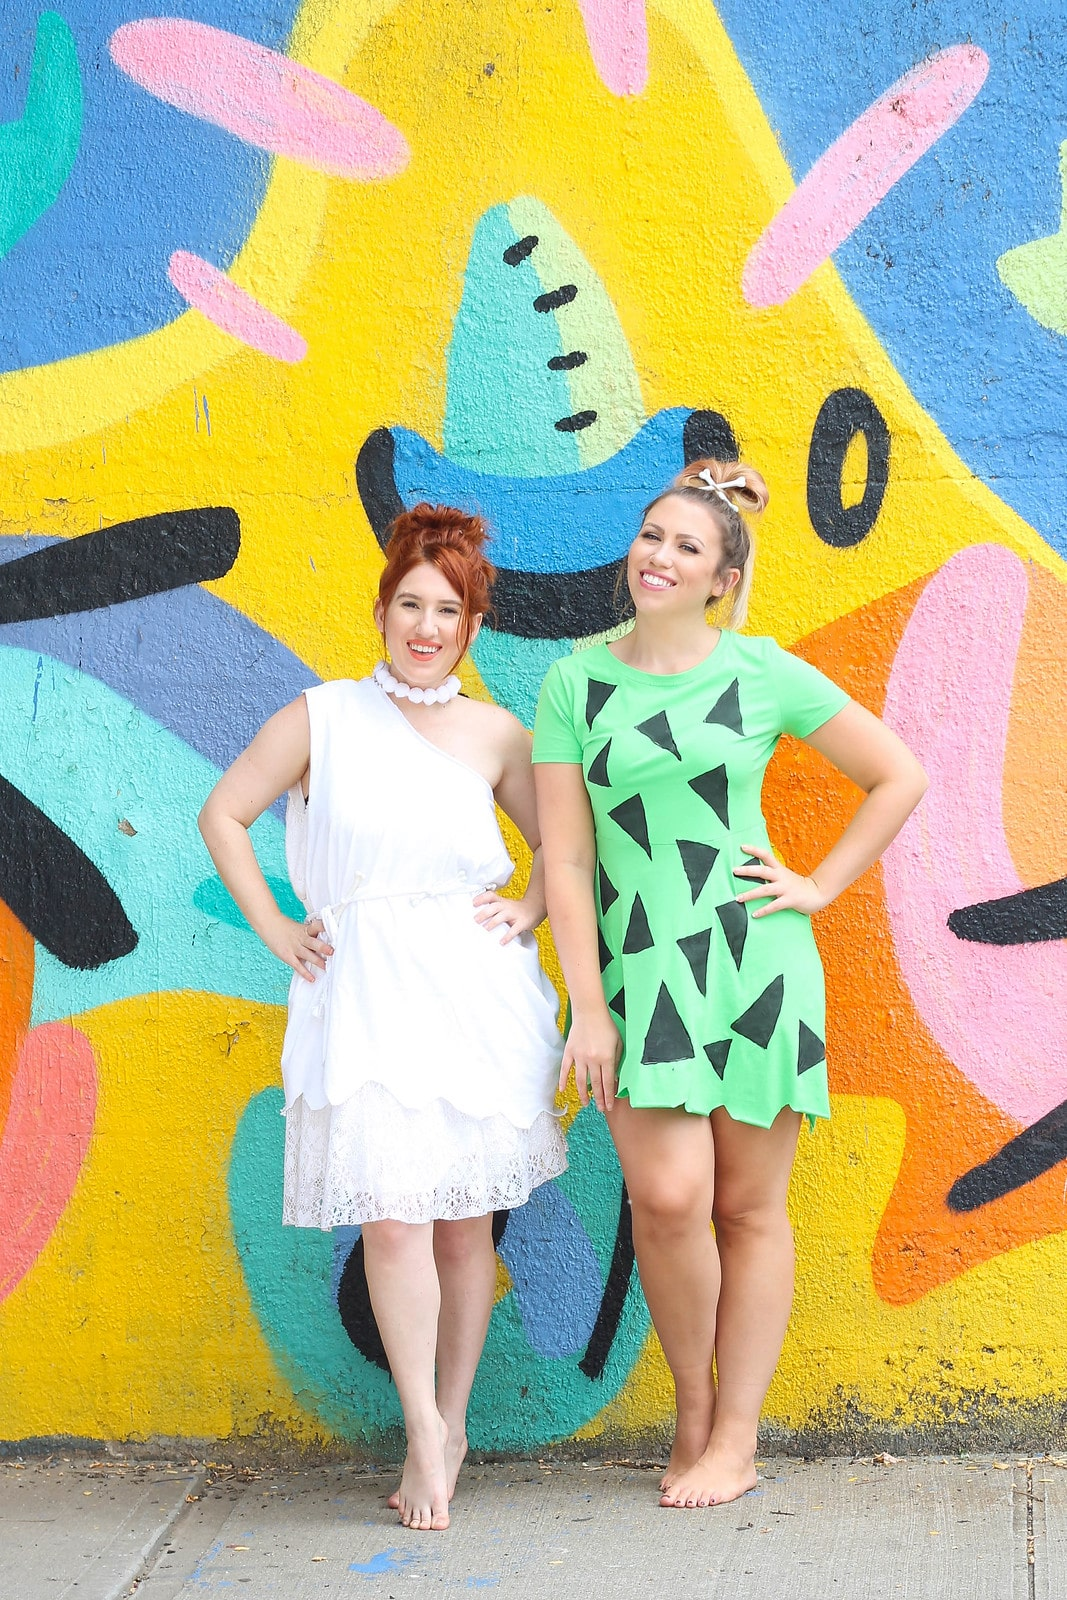 Wilma and Pebbles Flintstones Halloween Costume - Check out these 40 cute and creative Halloween costume ideas for women, couples, families, and friends! #halloween #halloweencostumes #halloweencostumeideas